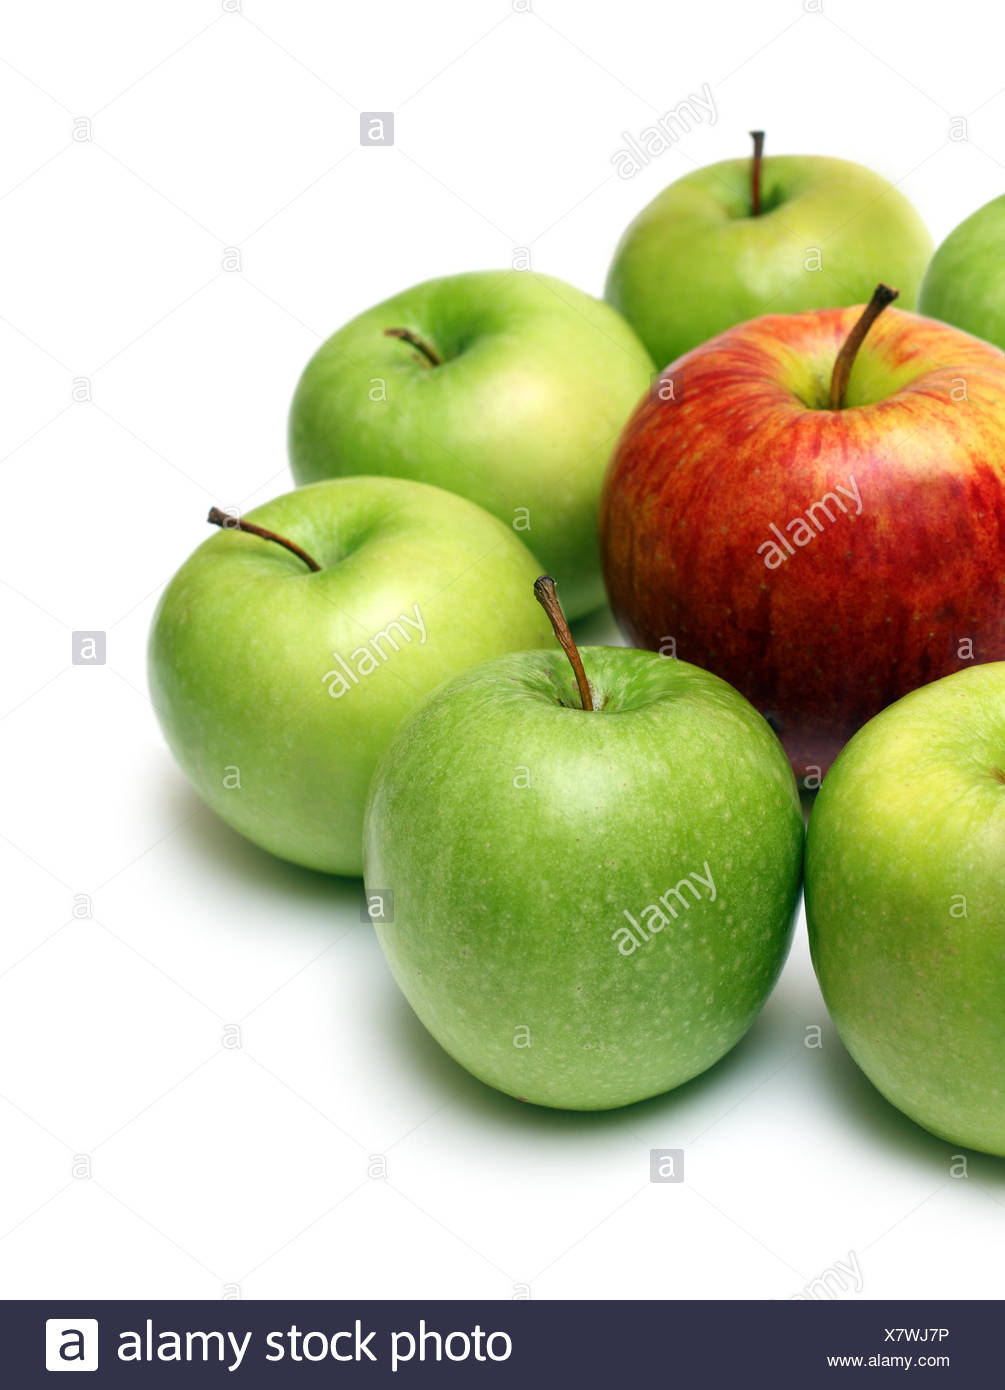 different concept with apples - Stock Image